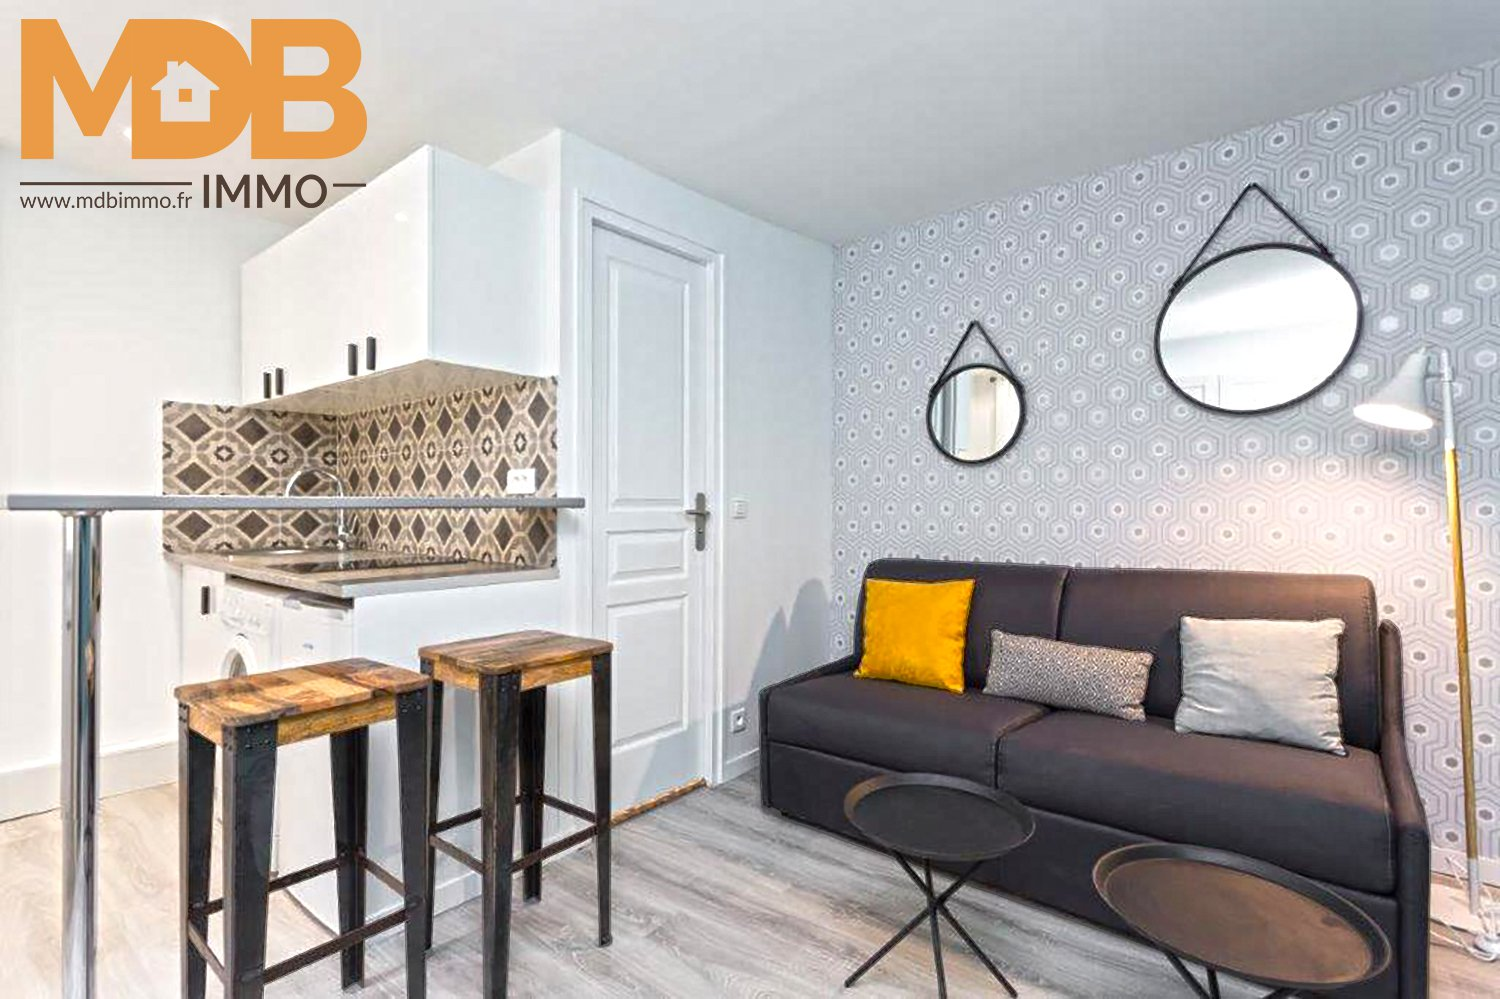 Paris 11th - Studio renovated - Ideal investor - ready to rent!